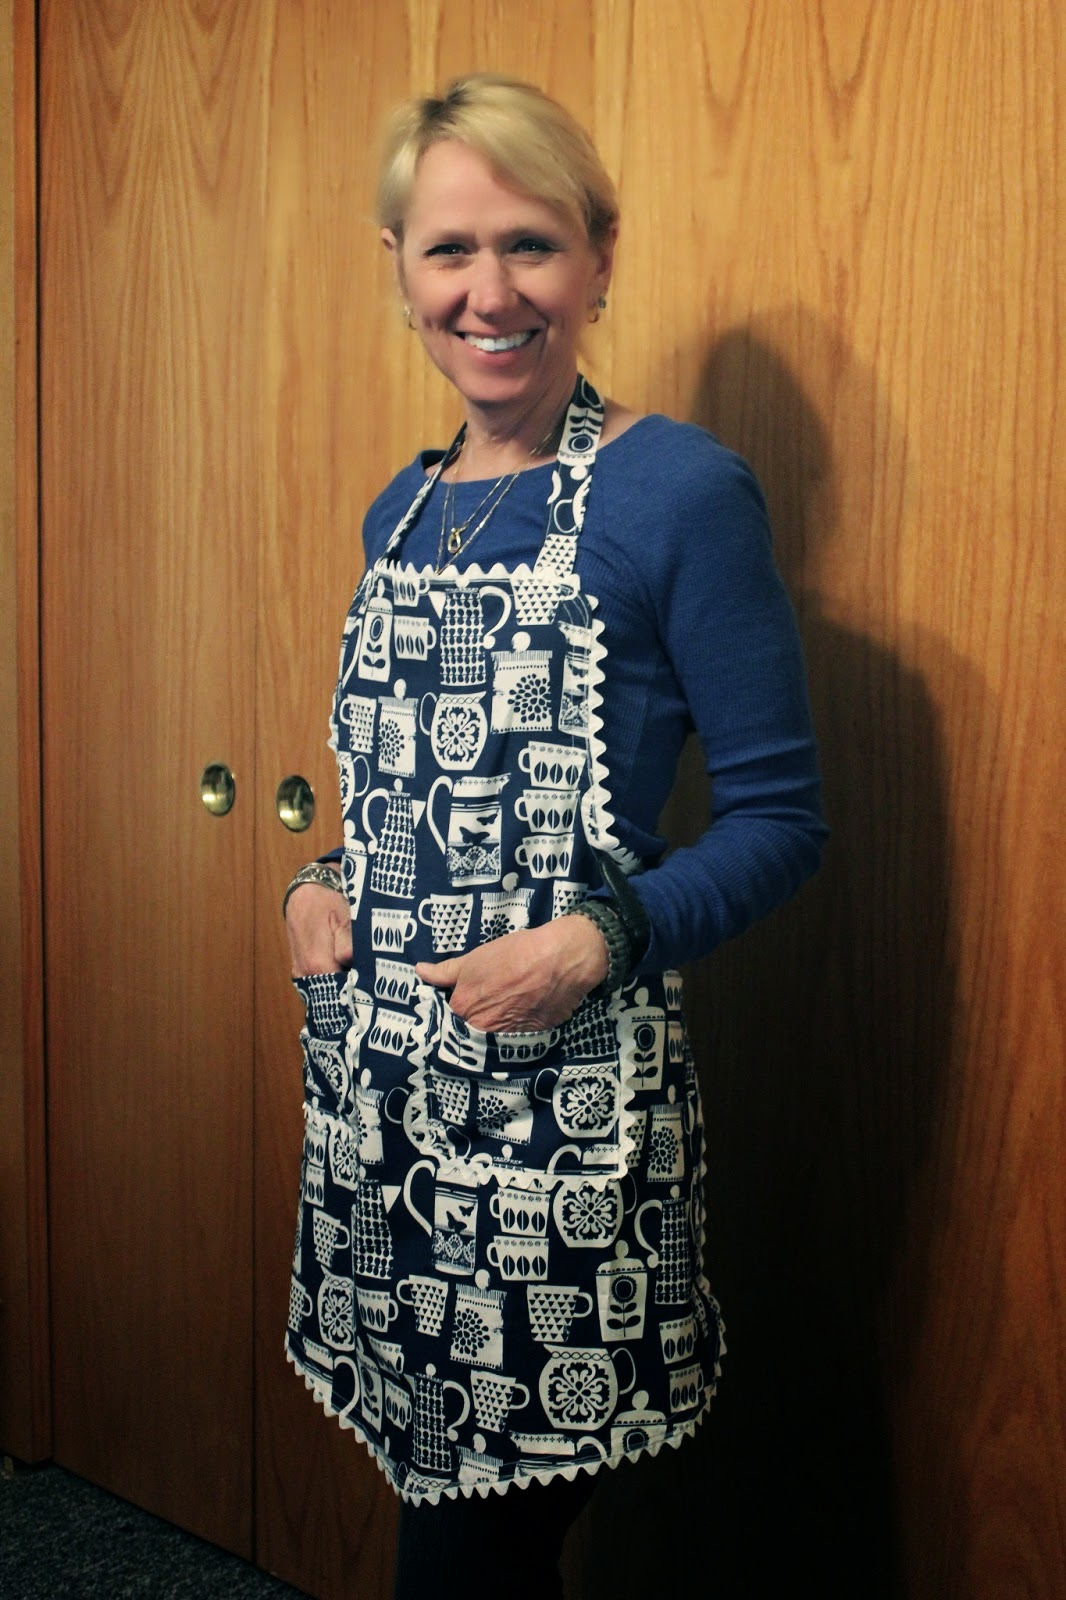 Kim in her new Apron!